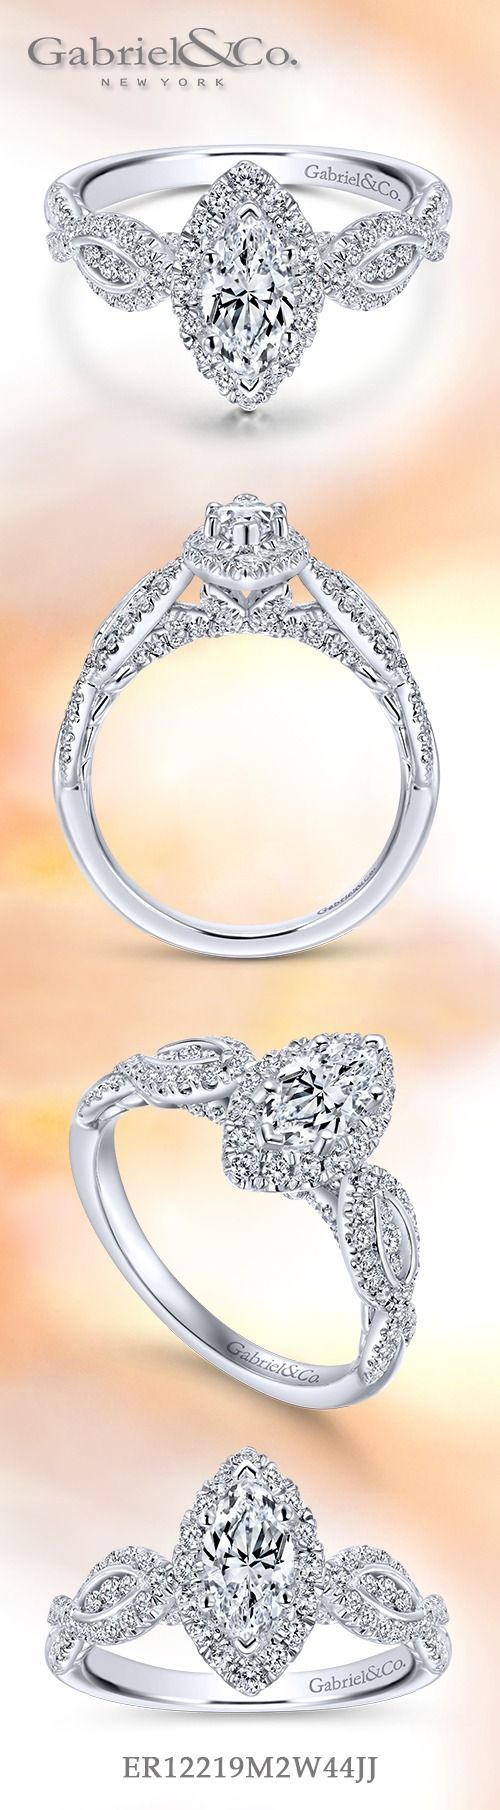 Gabriel & Co.-Voted #1 Most Preferred Fine Jewelry and Bridal Brand.  14k White Gold Marquise Halo  Engagement Ring.